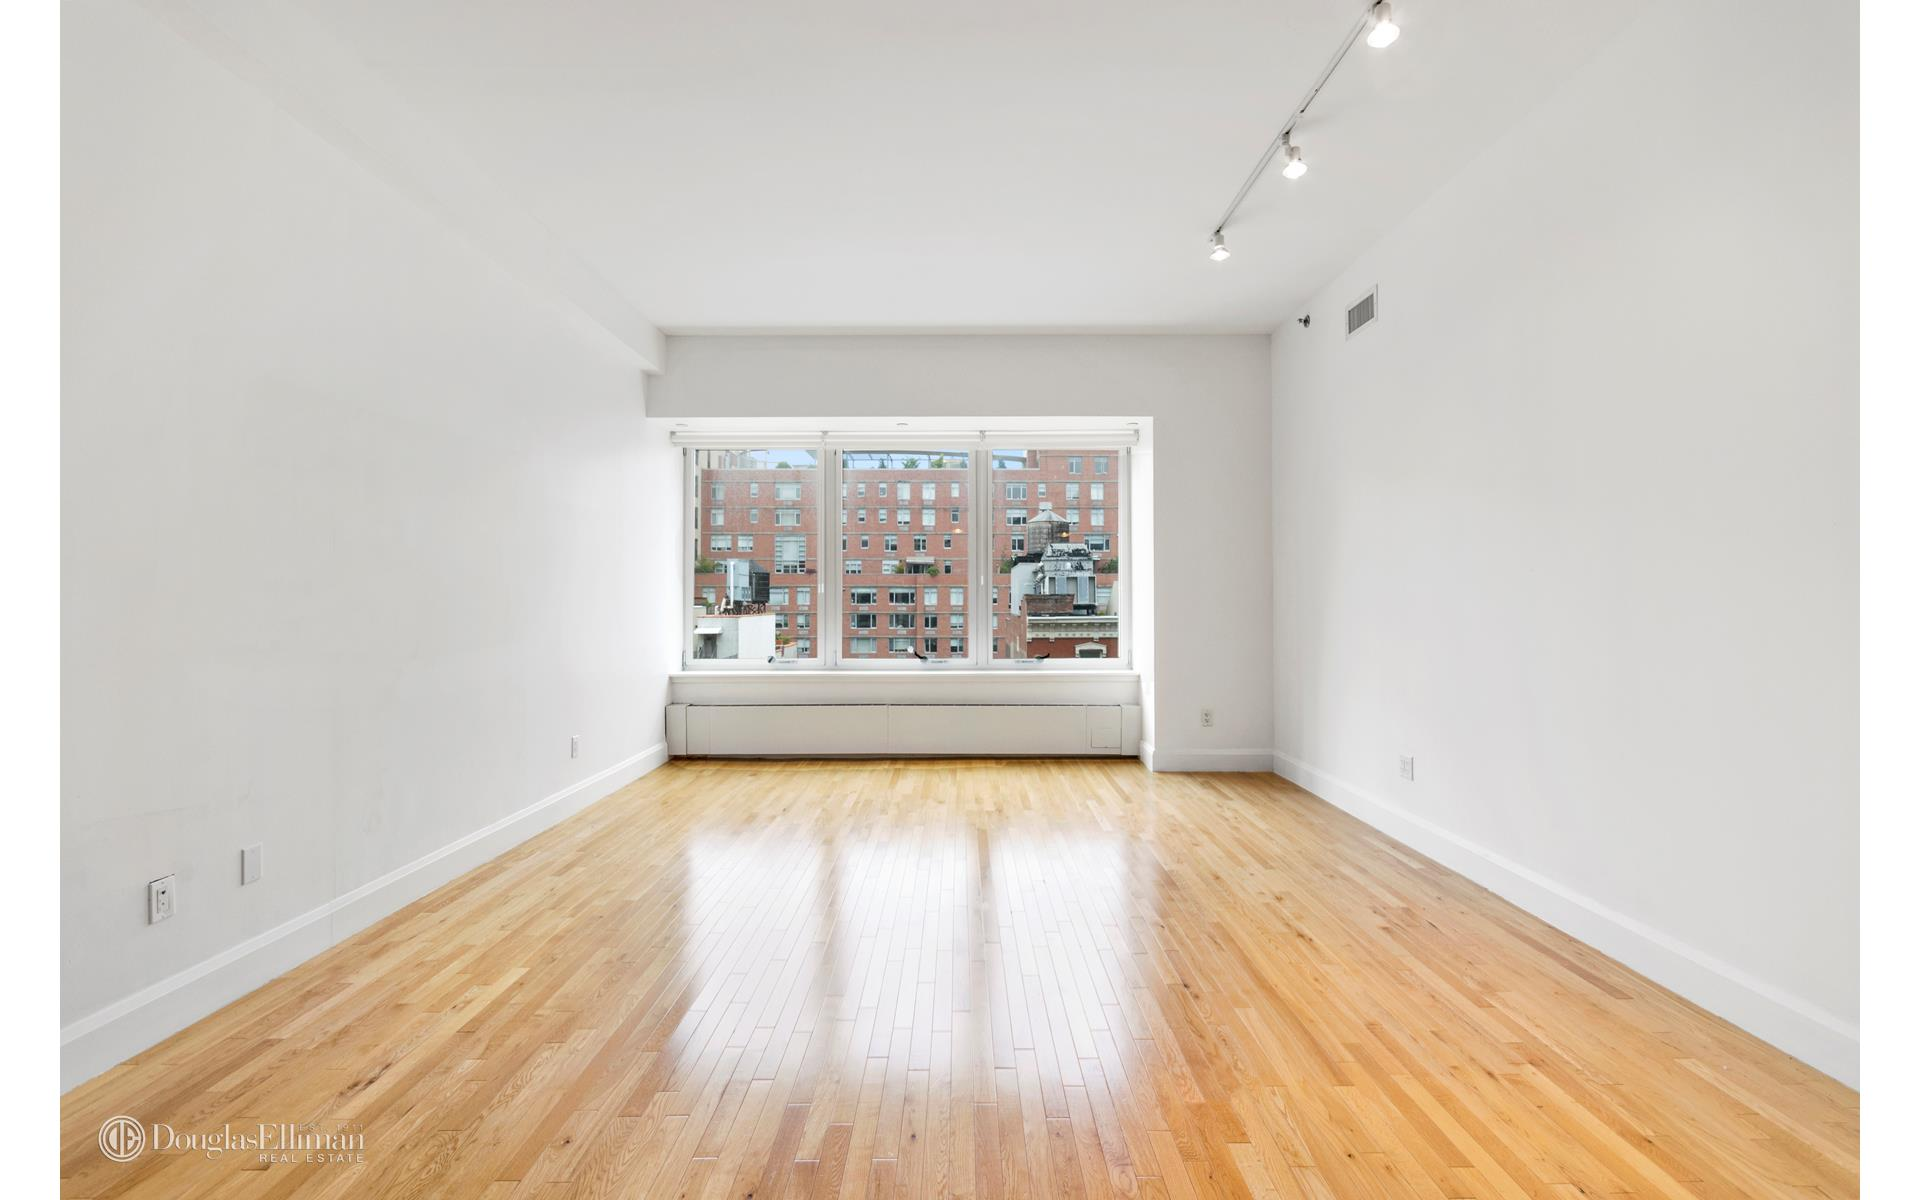 121 w 19 st new york ny apartable for 11 west 19th street 7th floor new york ny 10011